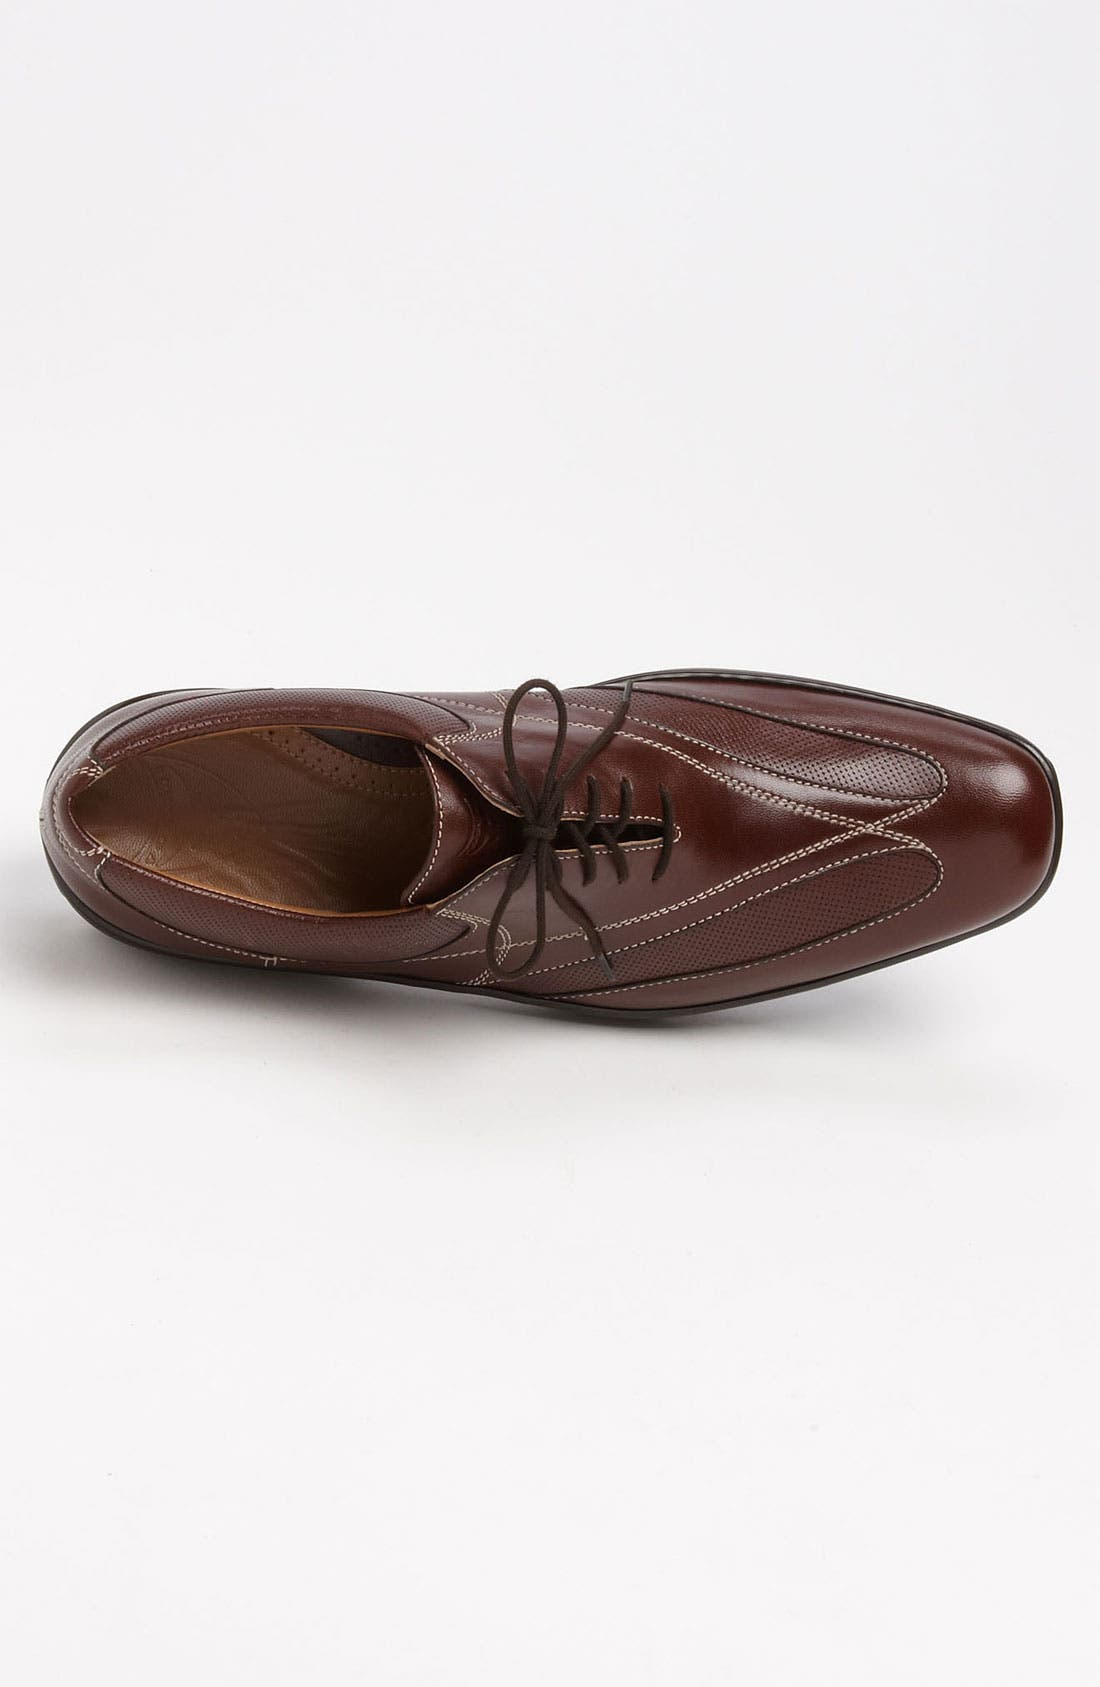 Alternate Image 3  - MICHAEL TOSCHI SPORTY OXFORD